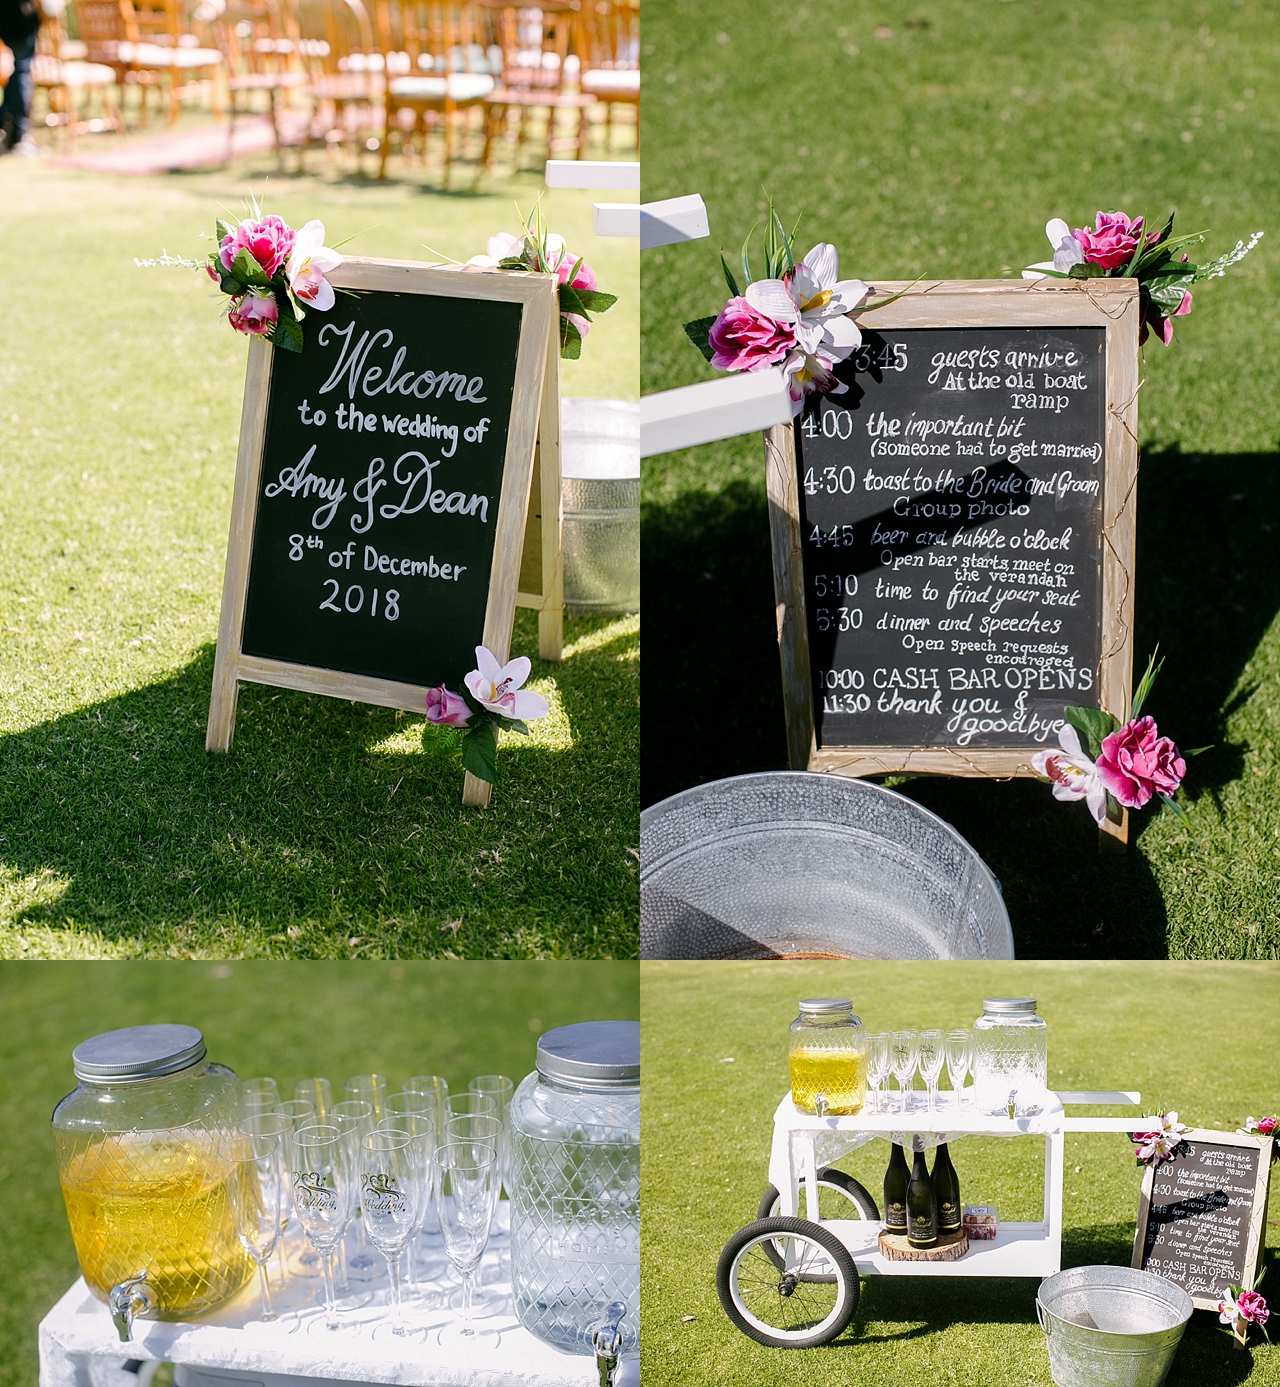 Yanchep_Pop_Up_Wedding_Ceremony_16.jpg